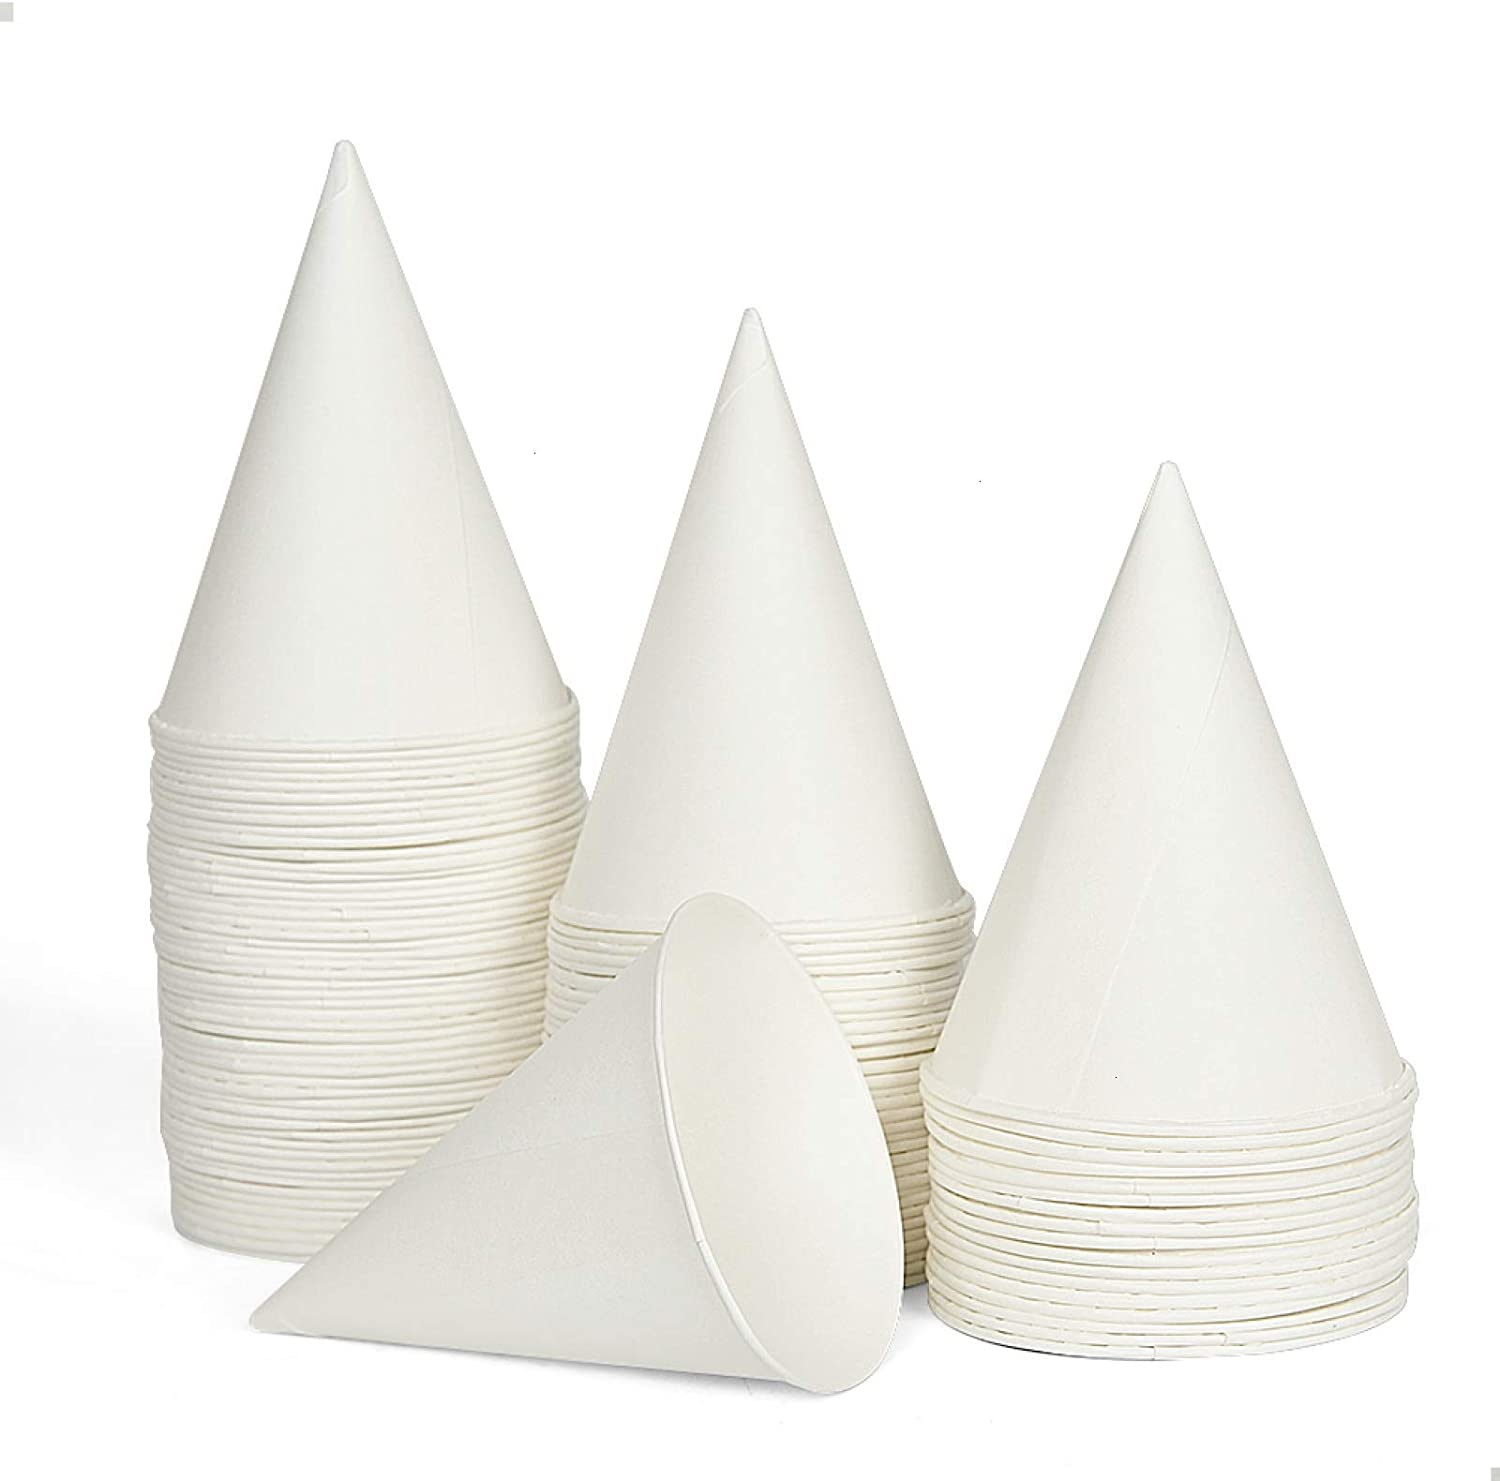 100 Snow Cone Cups, AQUEENLY Wax Coated Leakproof Cone Paper Cups for Slush, Shaved Ice, Water - 6OZ, White